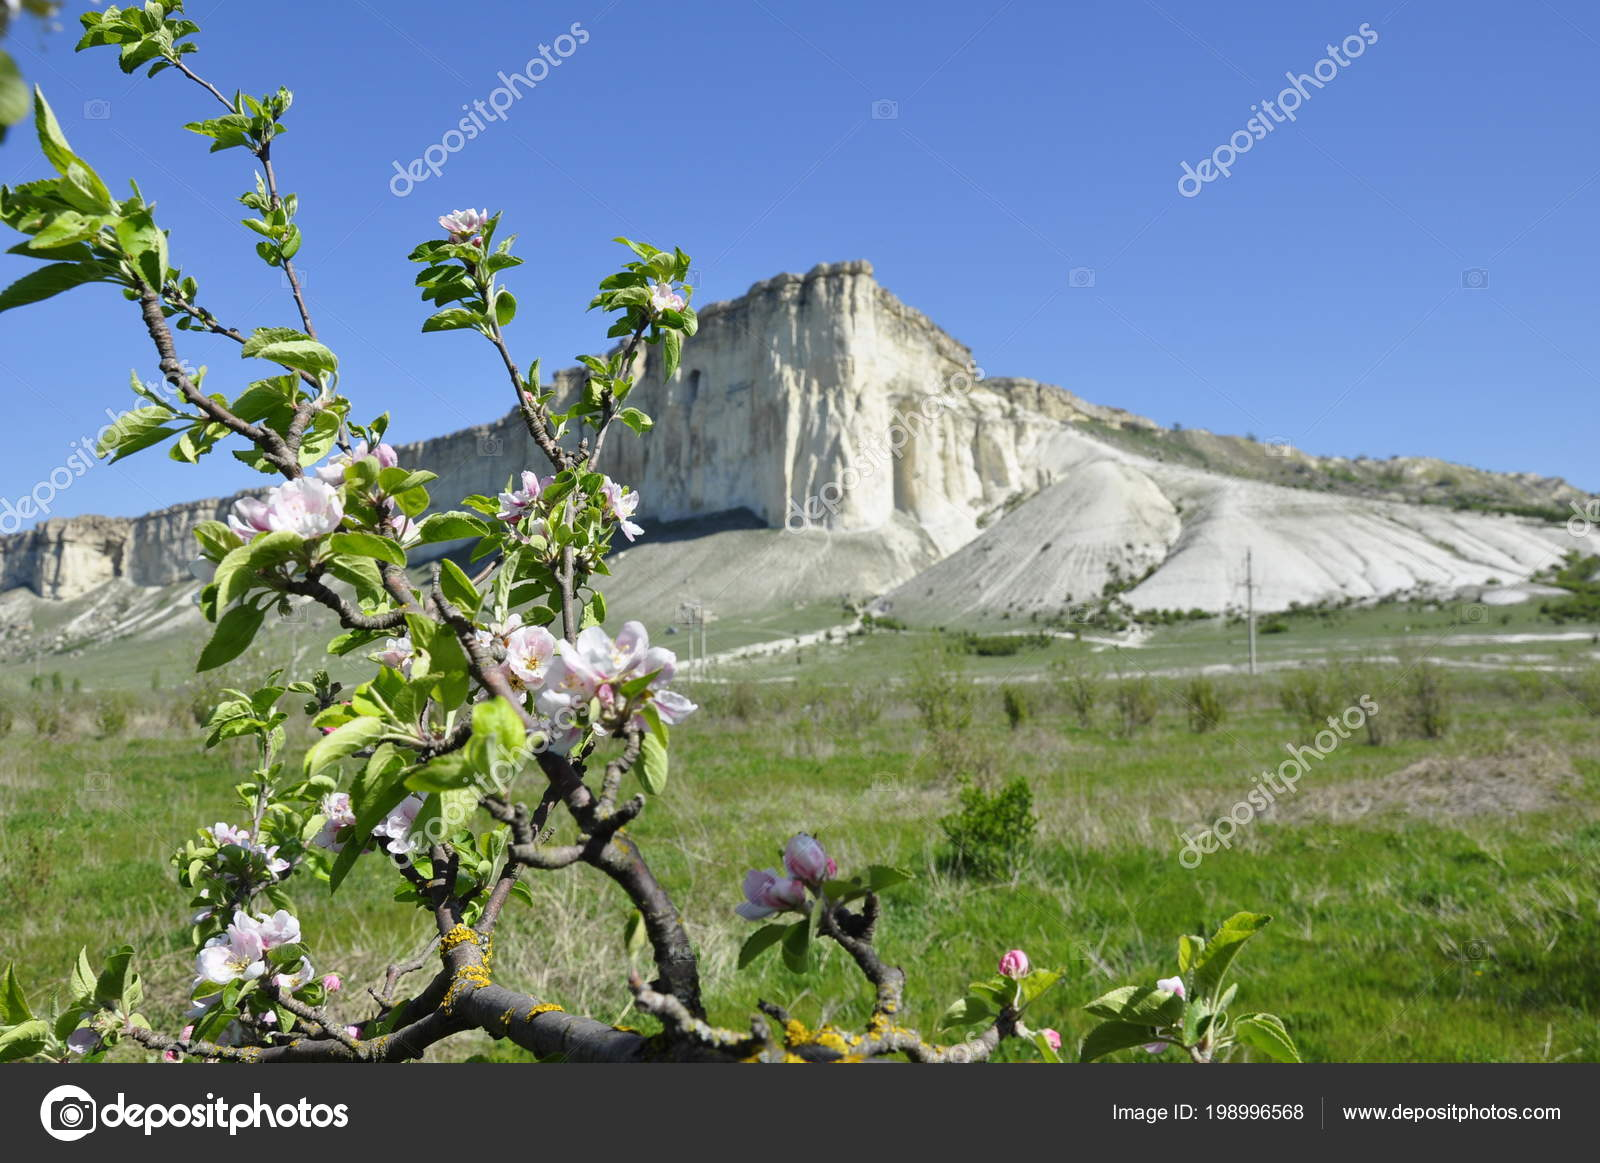 Mountain view flowers blooming apple tree crimea white rock pink mountain view flowers blooming apple tree crimea white rock pink stock photo mightylinksfo